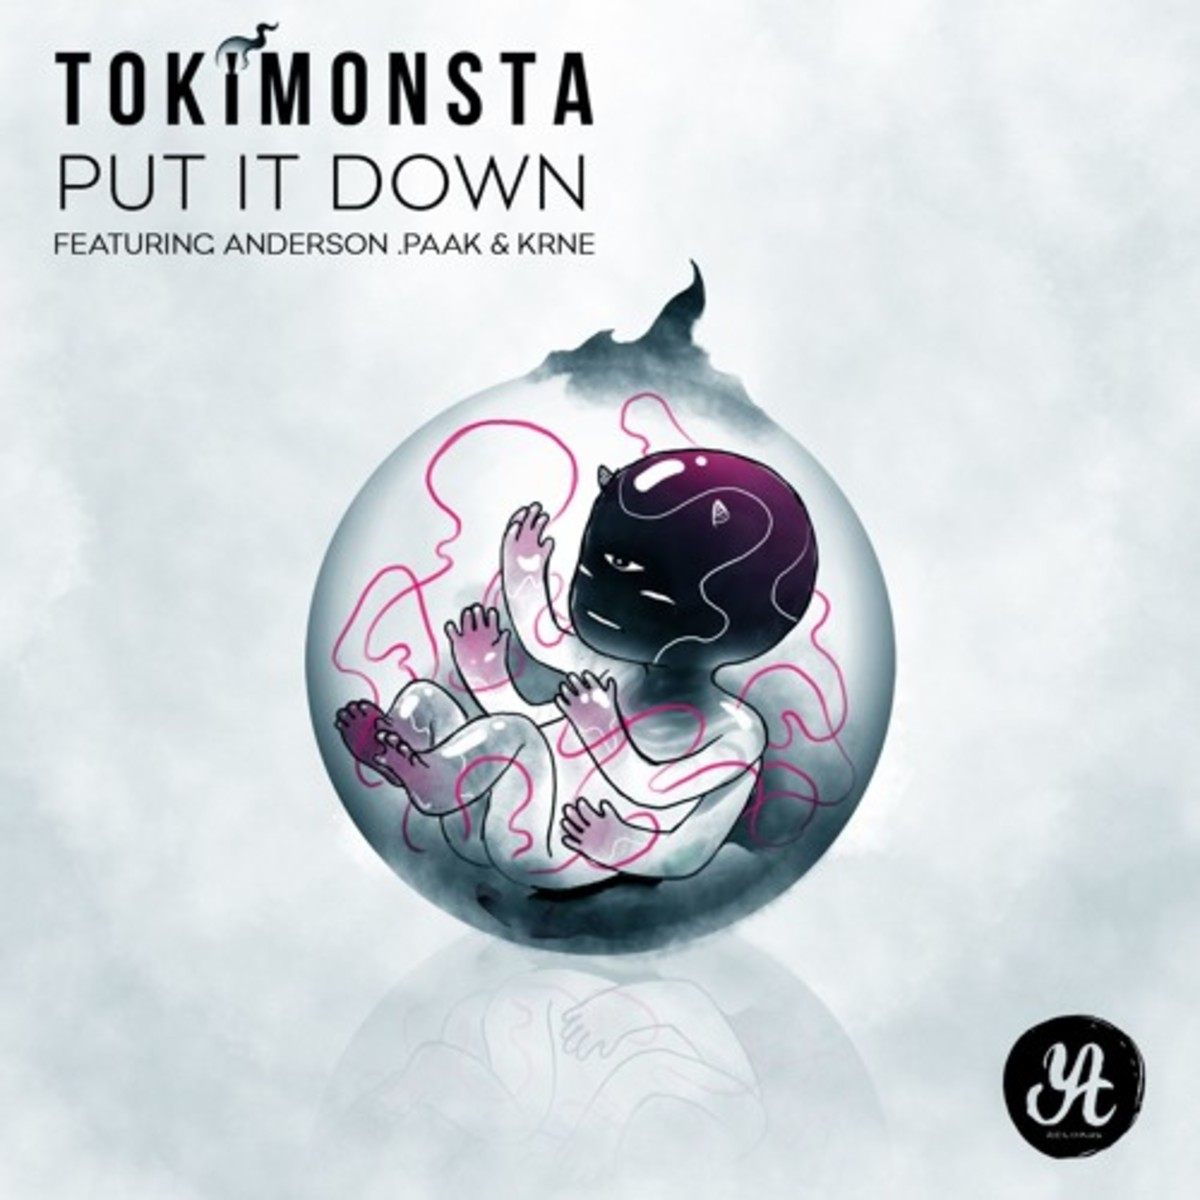 tokimonsta-put-it-down.jpg